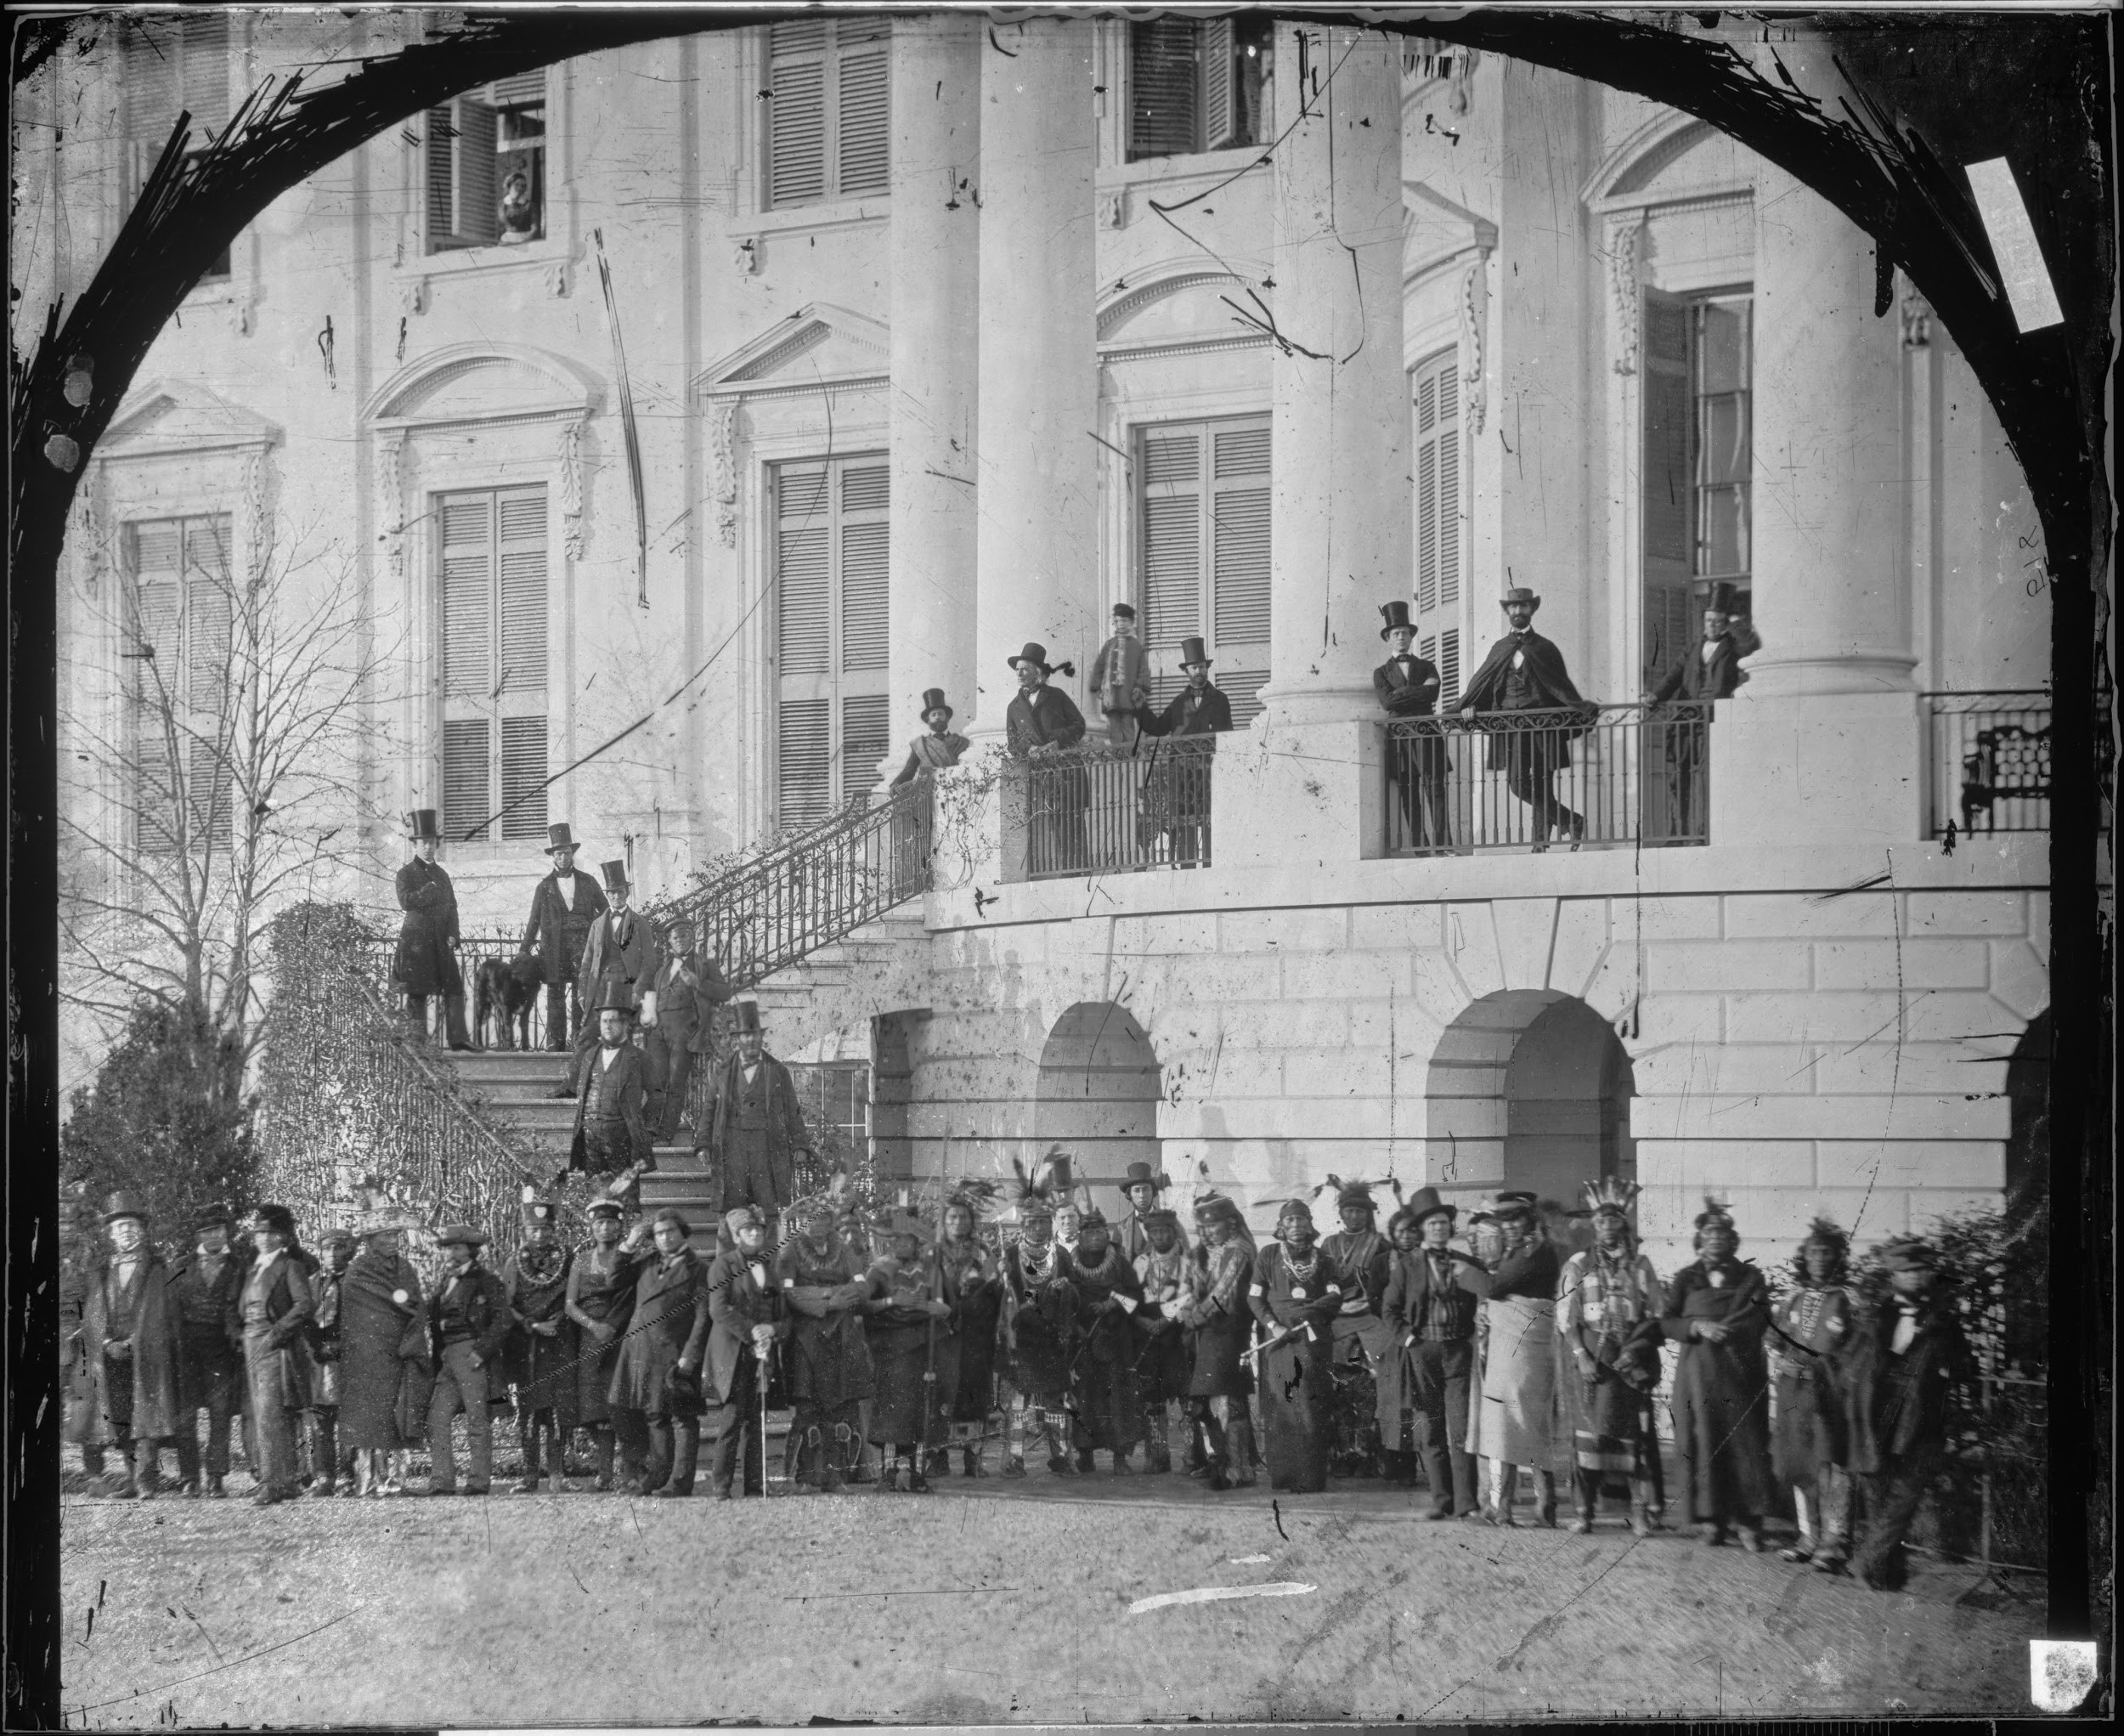 Tribal Delegation to the White House to negotiate land rights, 1860.  Image source: The National Archives, David M. Rubenstein Gallery, Records of Rights